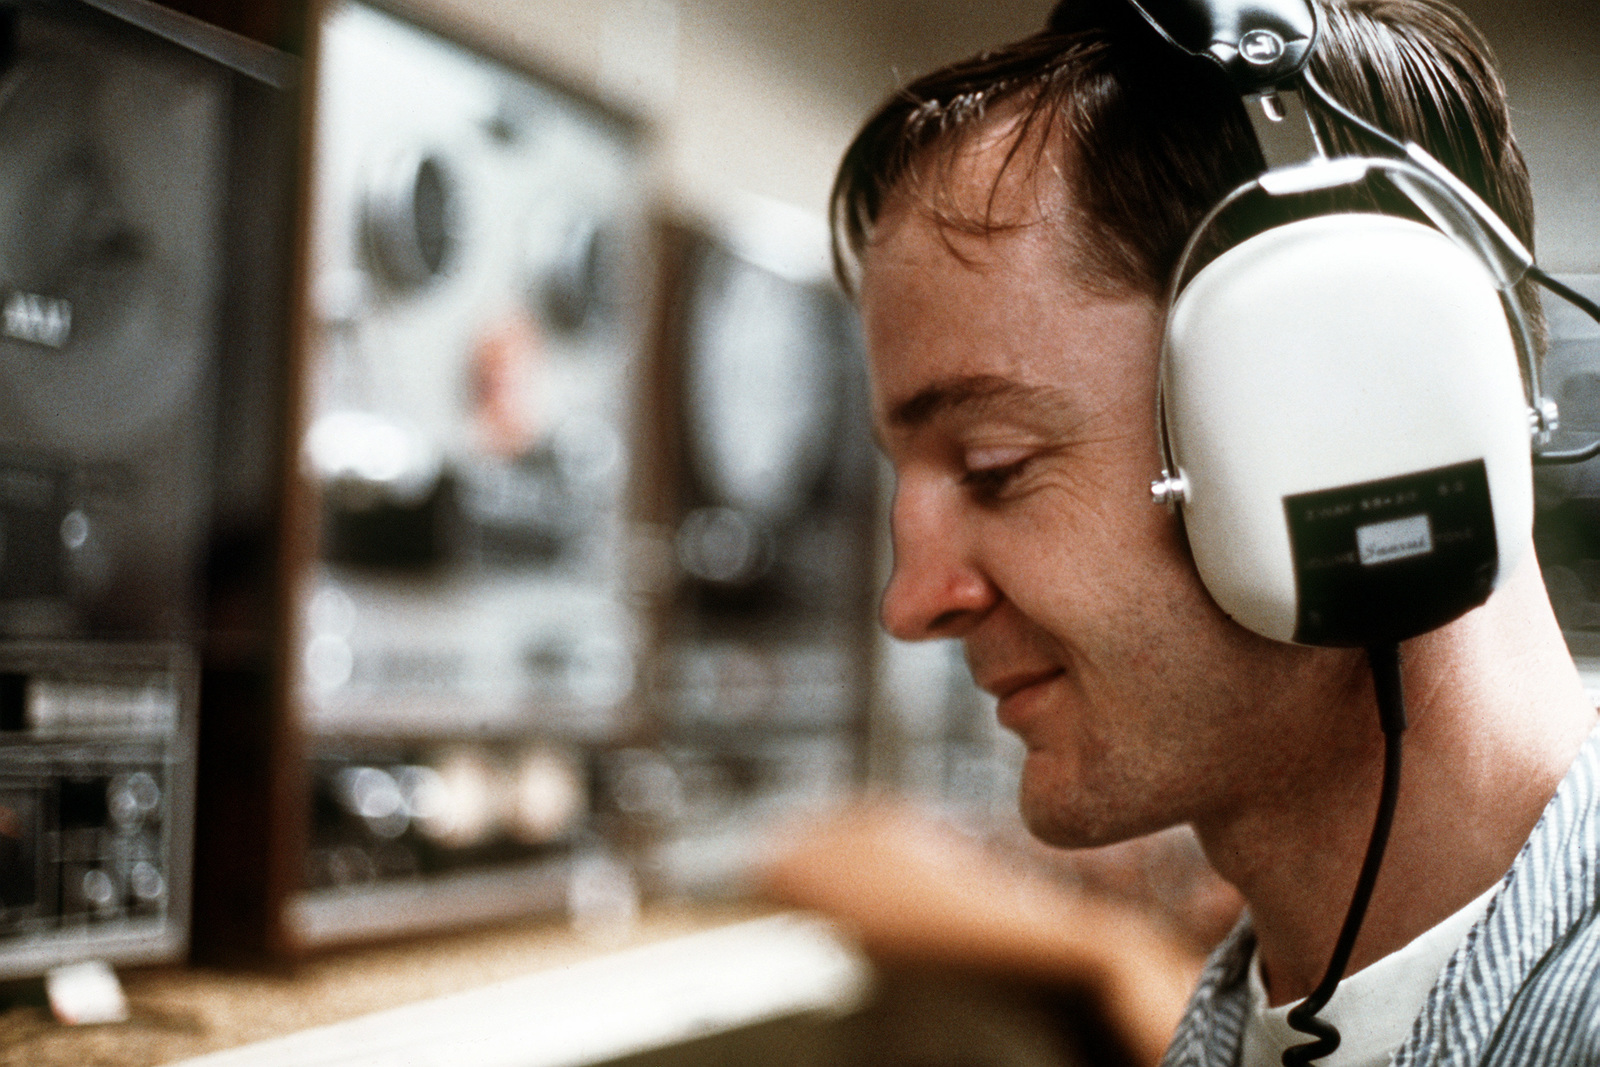 LT. CMDR. Michael Cronin listens to a stereo tape shortly after being released from a prisoner of war camp in Vietnam